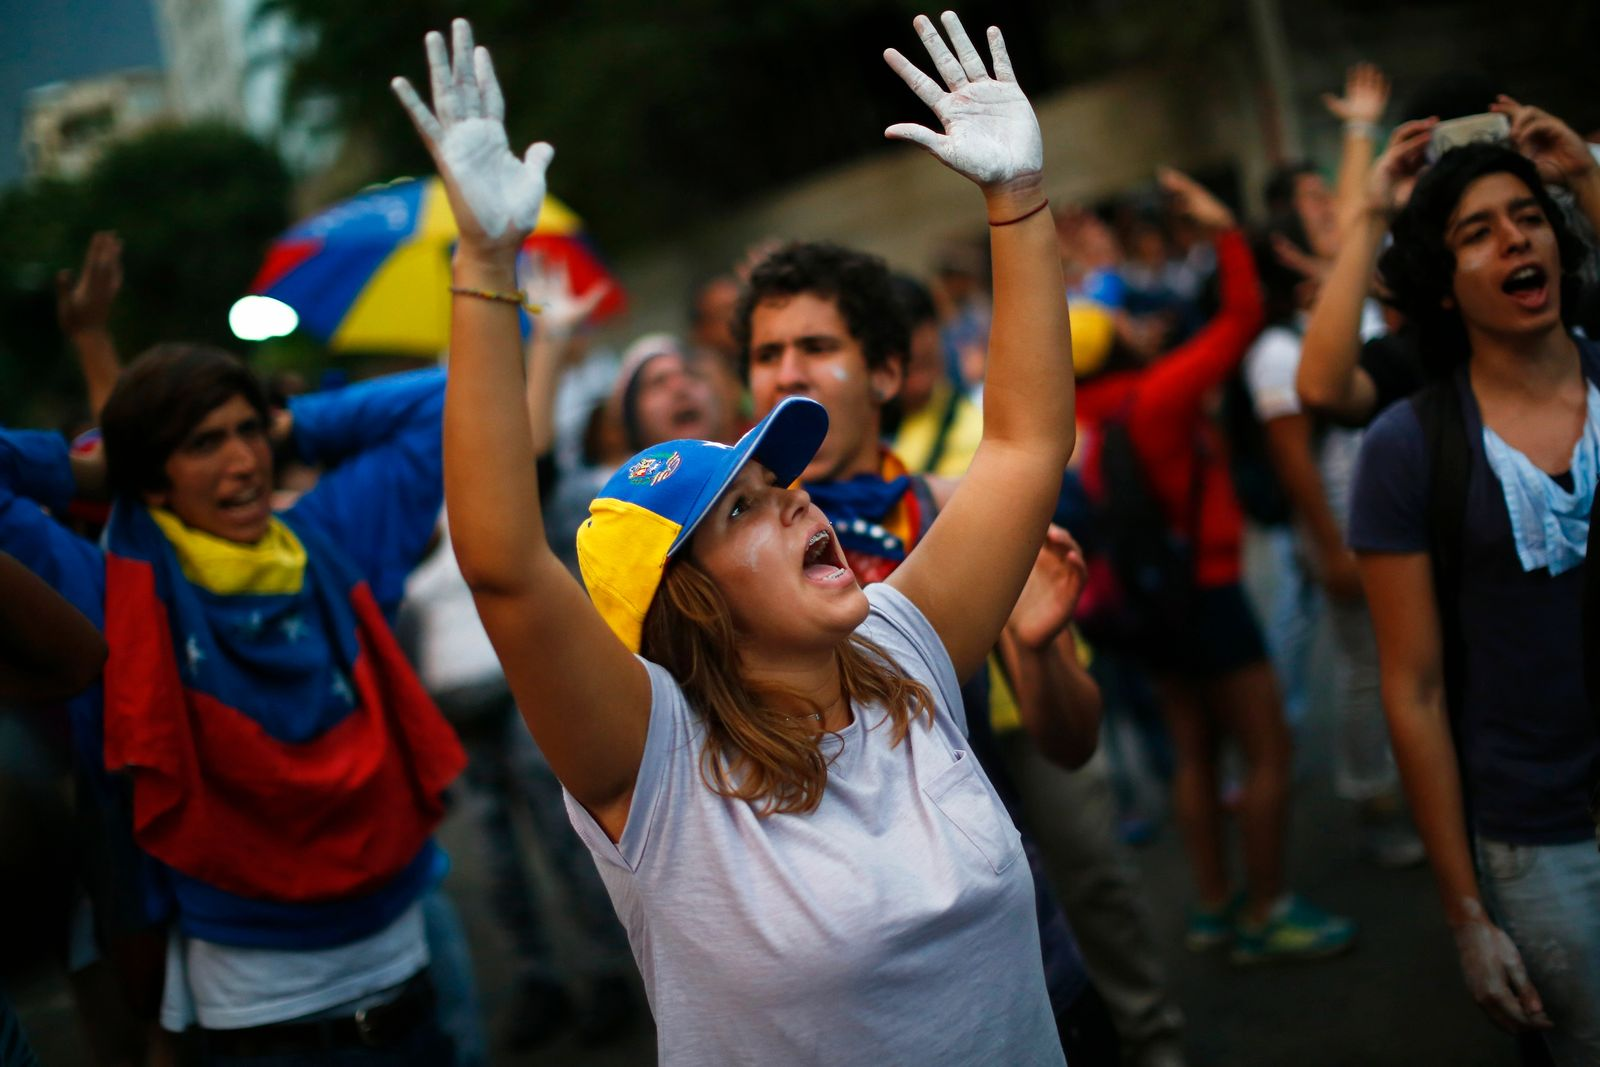 Students shout against the National Guards during a demonstration outside Voluntad Popular headquarters in Caracas